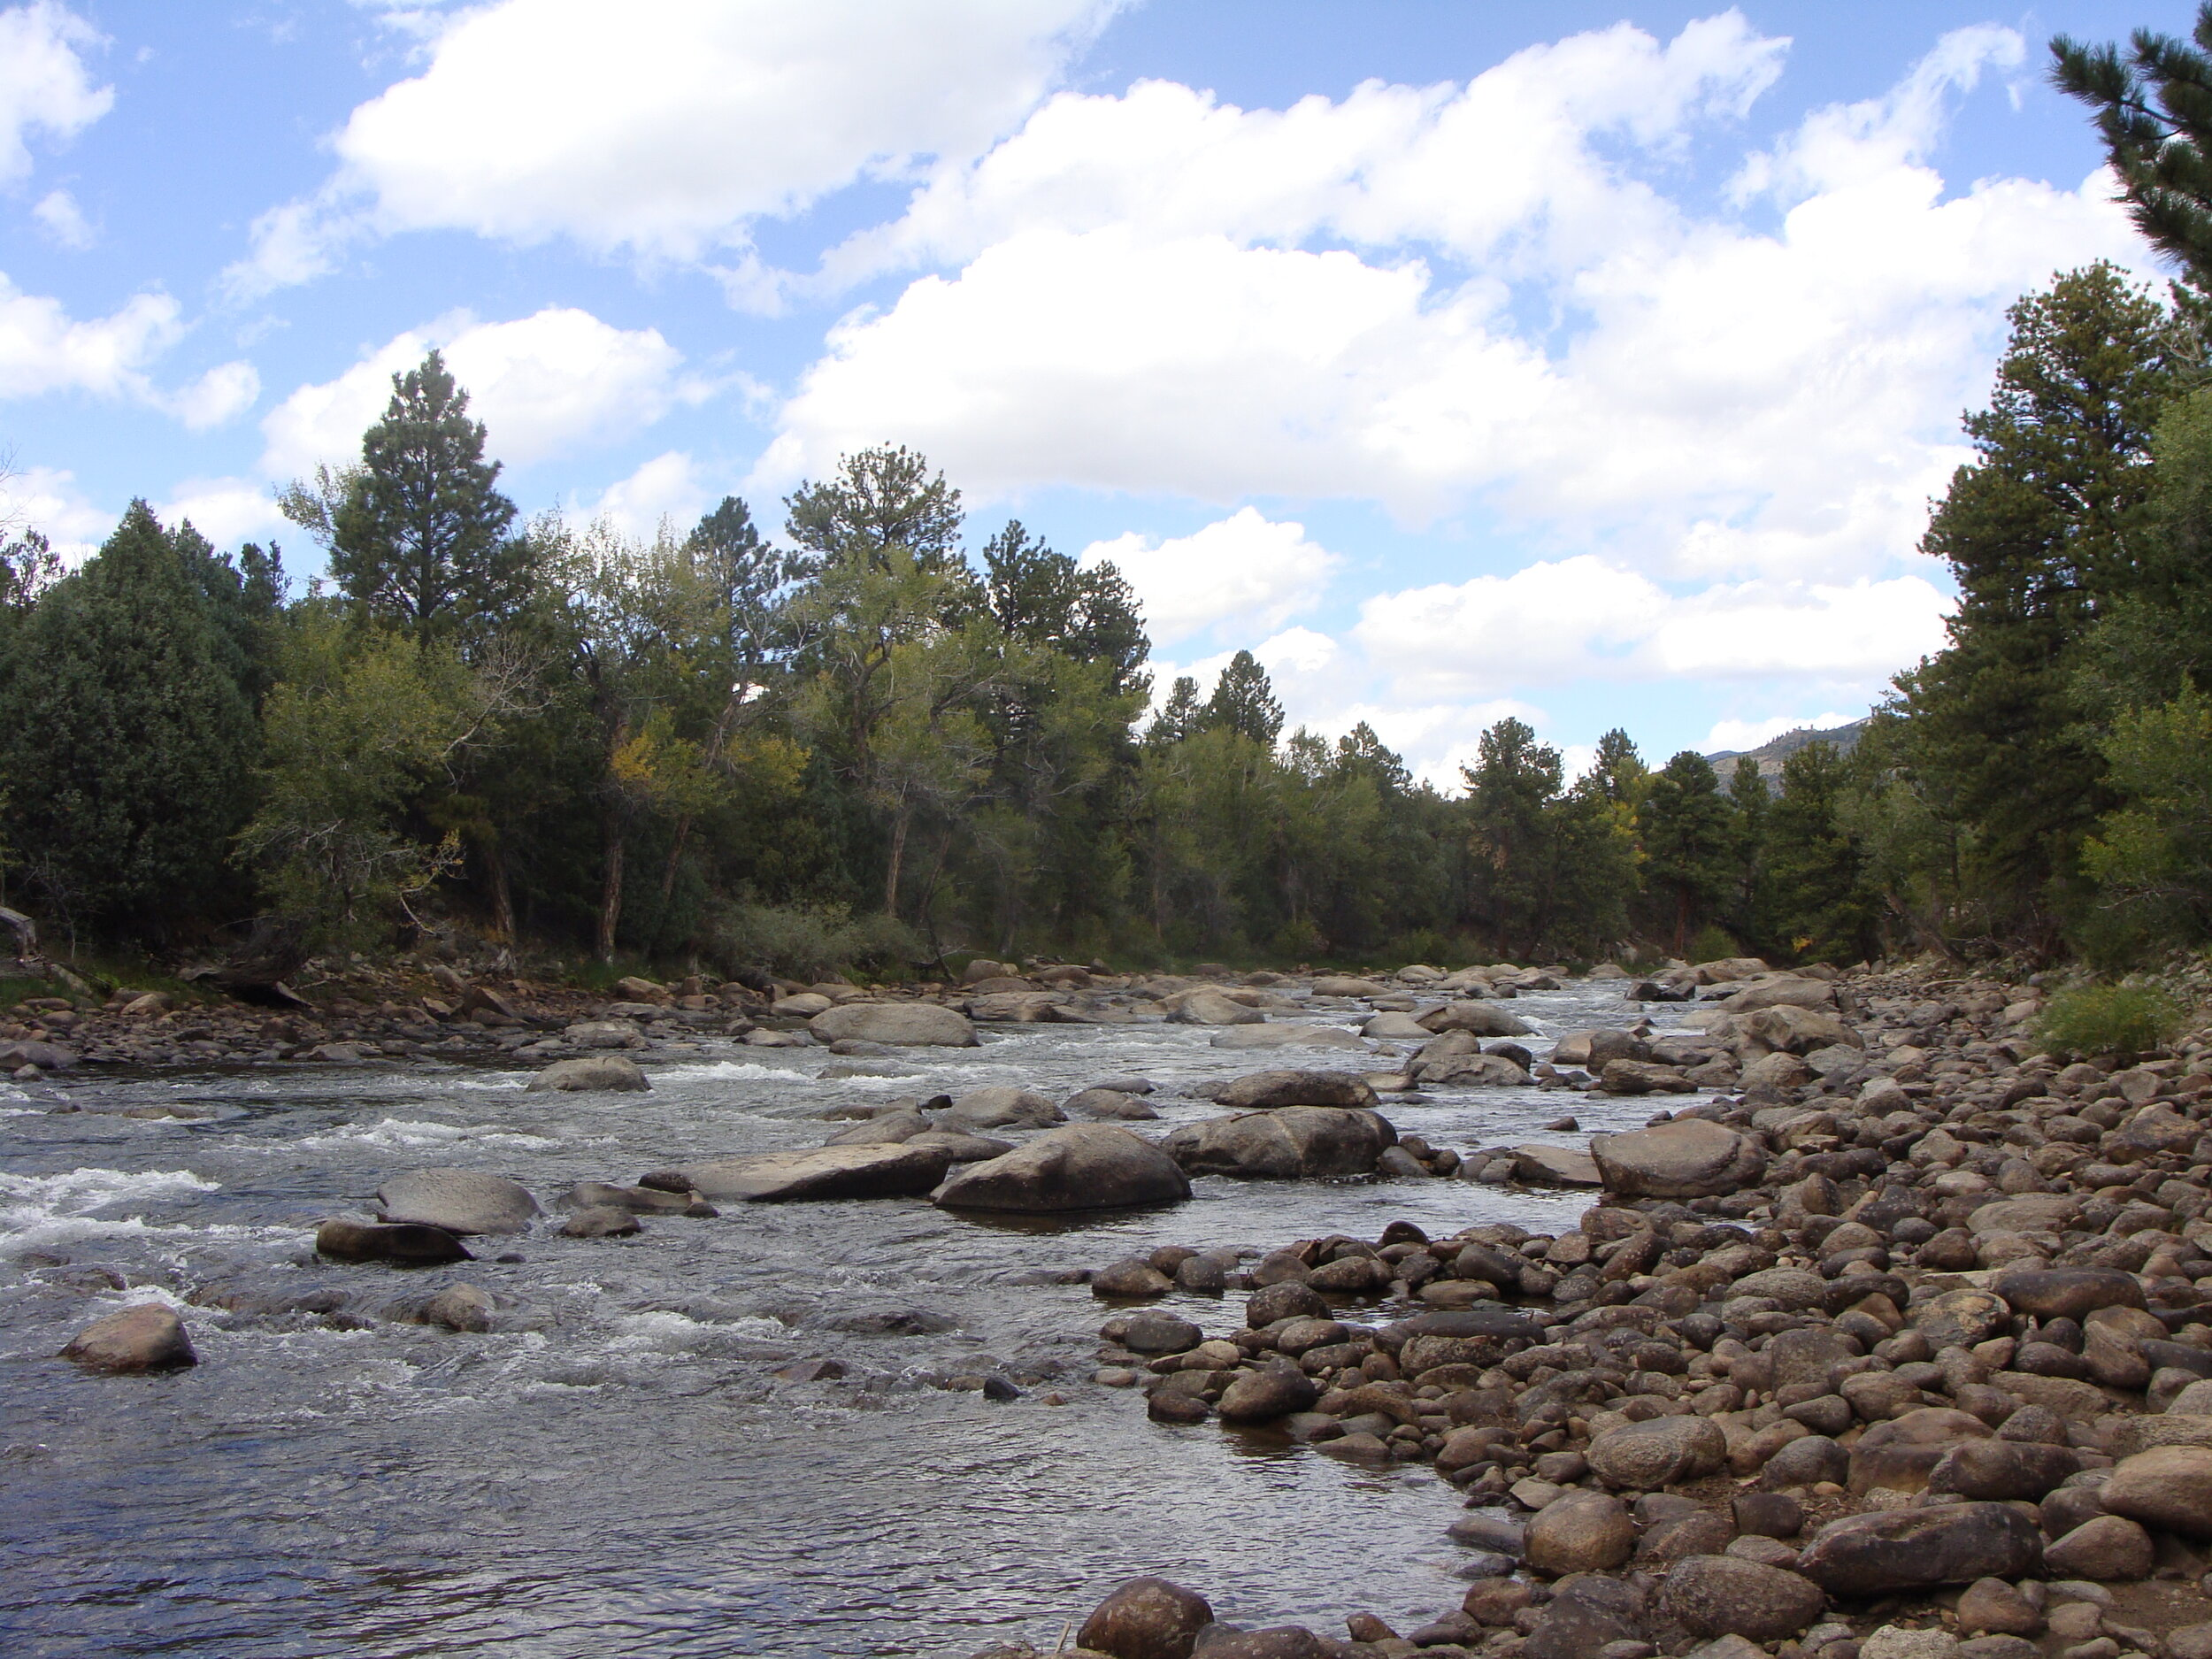 Grateful for the water, the trees, the rocks, the sky … the beauty along the Arkansas River